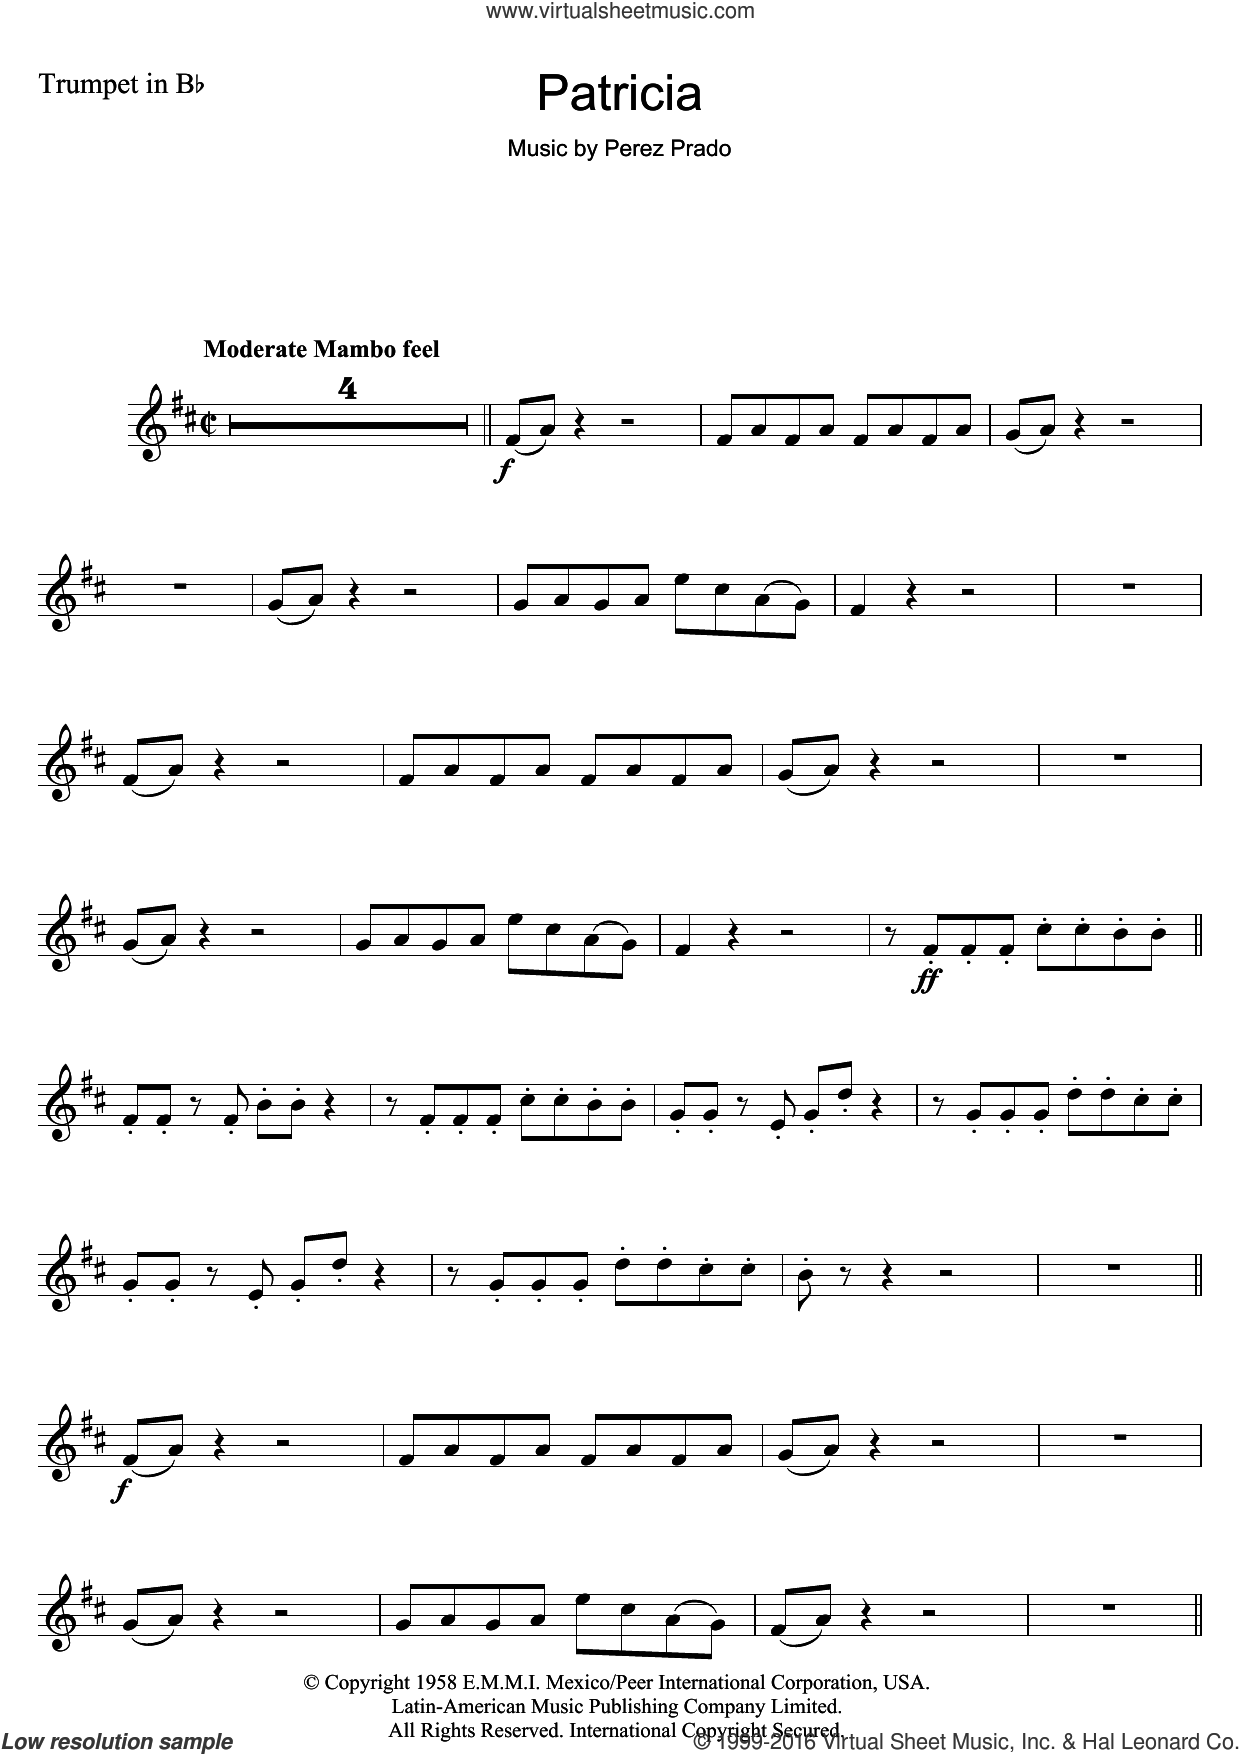 Patricia sheet music for trumpet solo by Perez Prado